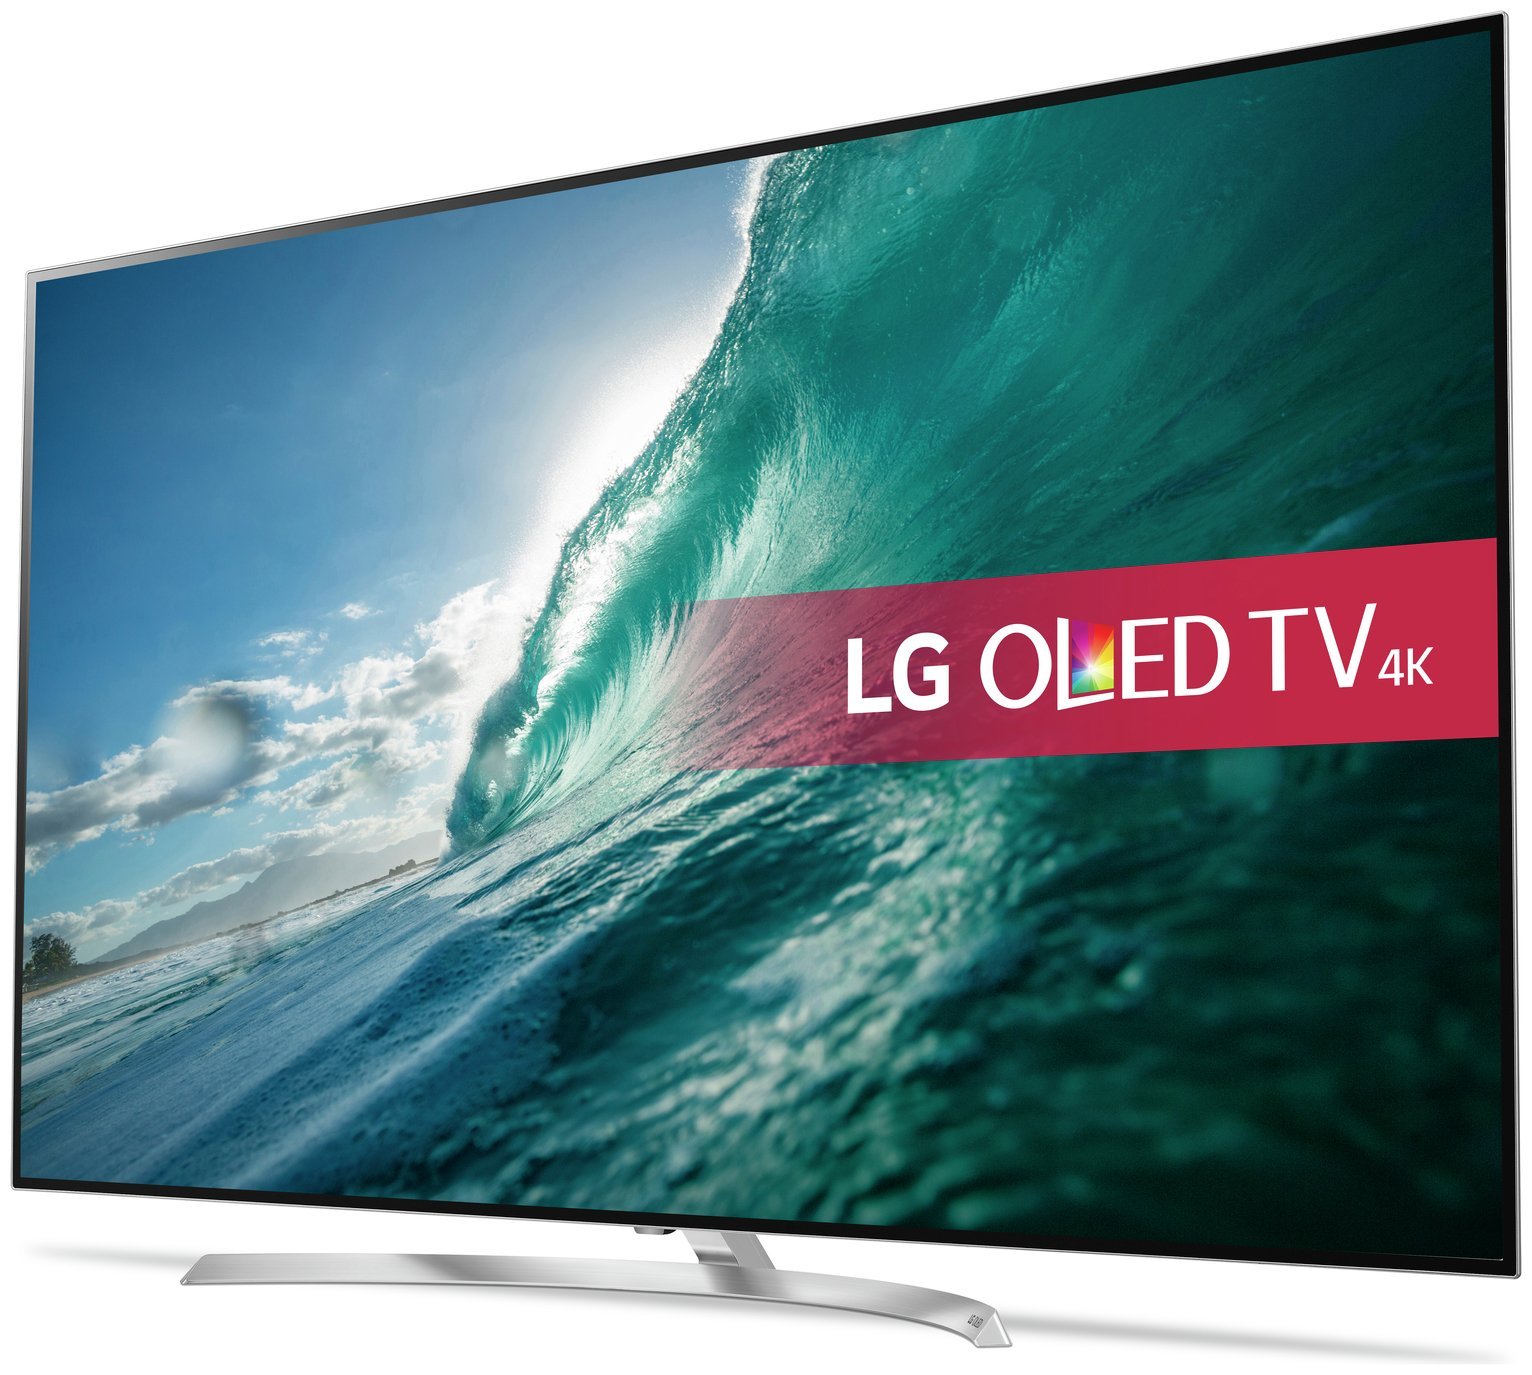 Image of LG OLED65B7V 65 Inch Smart OLED 4K Ultra HD TV with HDR